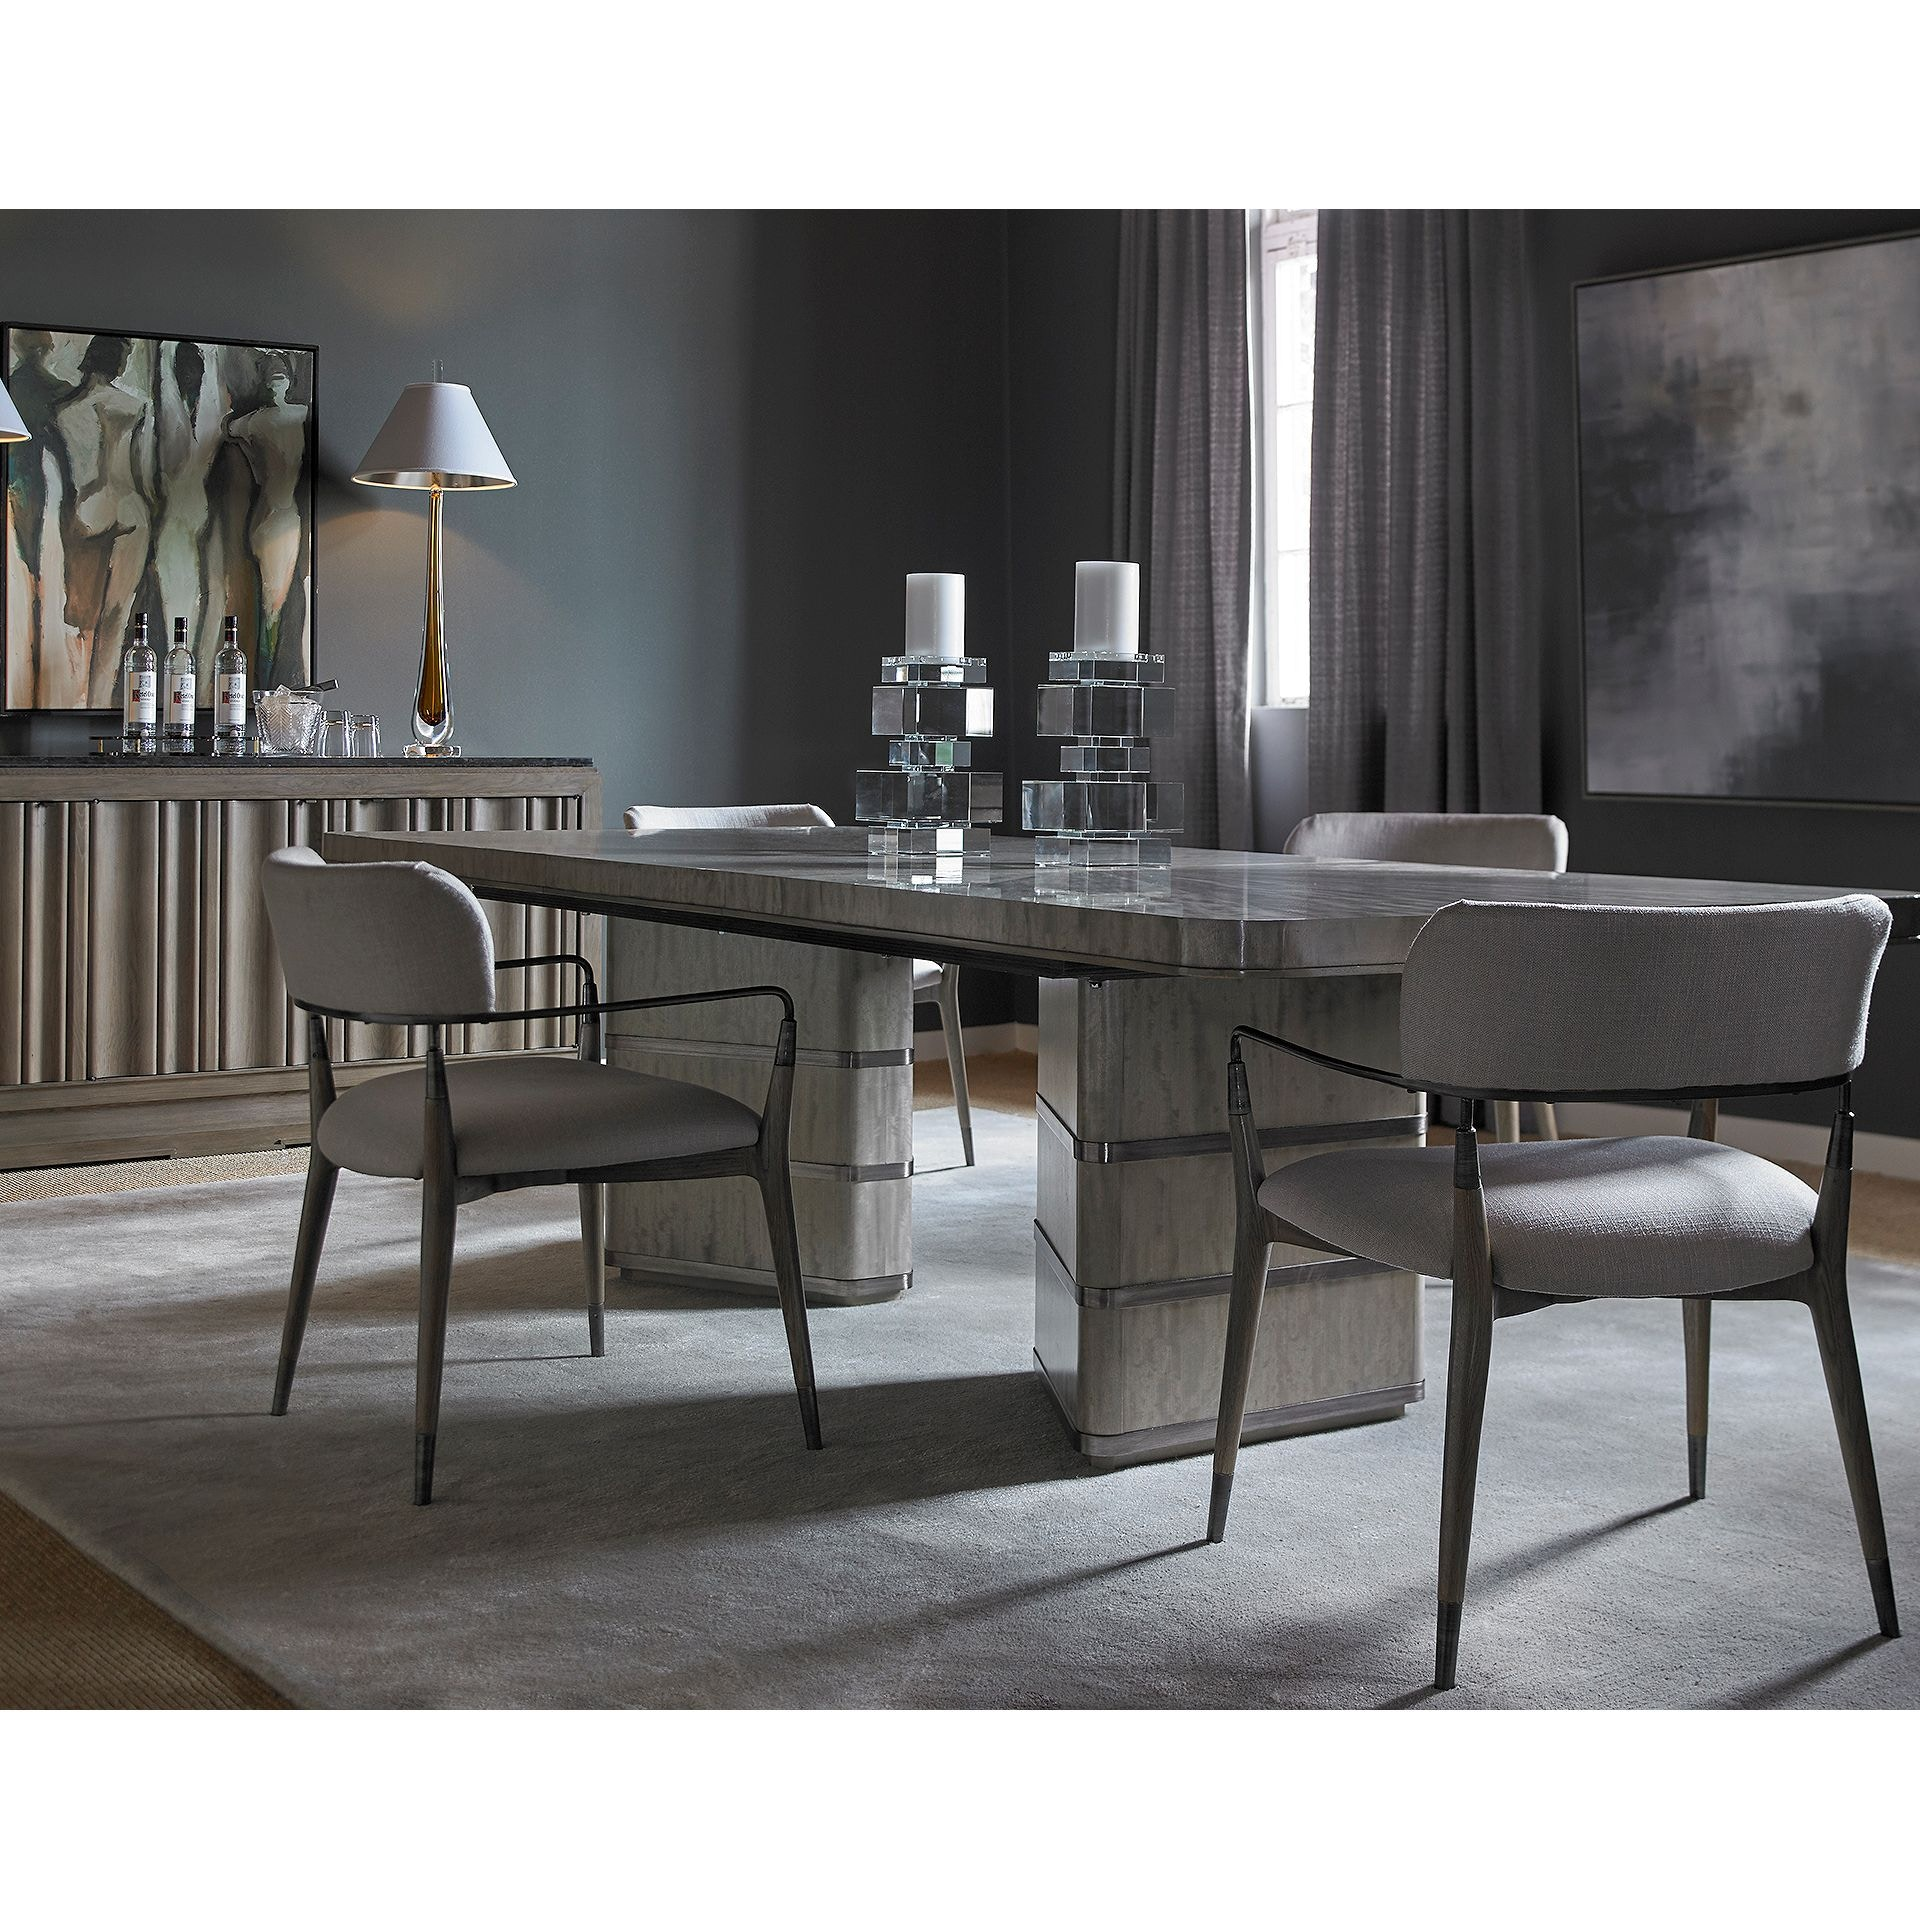 Henredon Furniture 1945 Collection Belvedere Dining Table 2201 20 801B U0026  801T